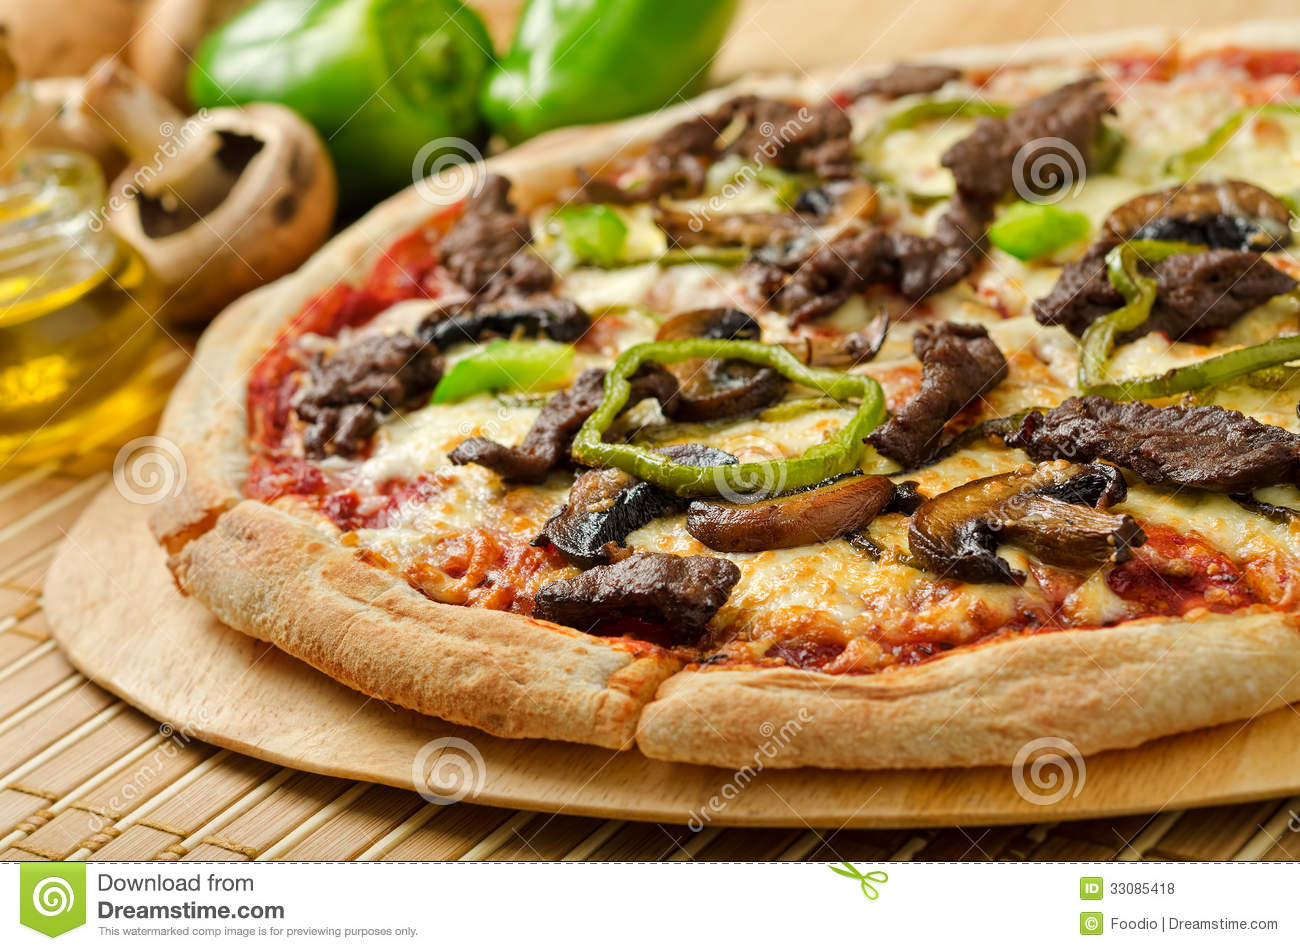 steak and mushroom pizza stock photo image of lunch 33085418. Black Bedroom Furniture Sets. Home Design Ideas